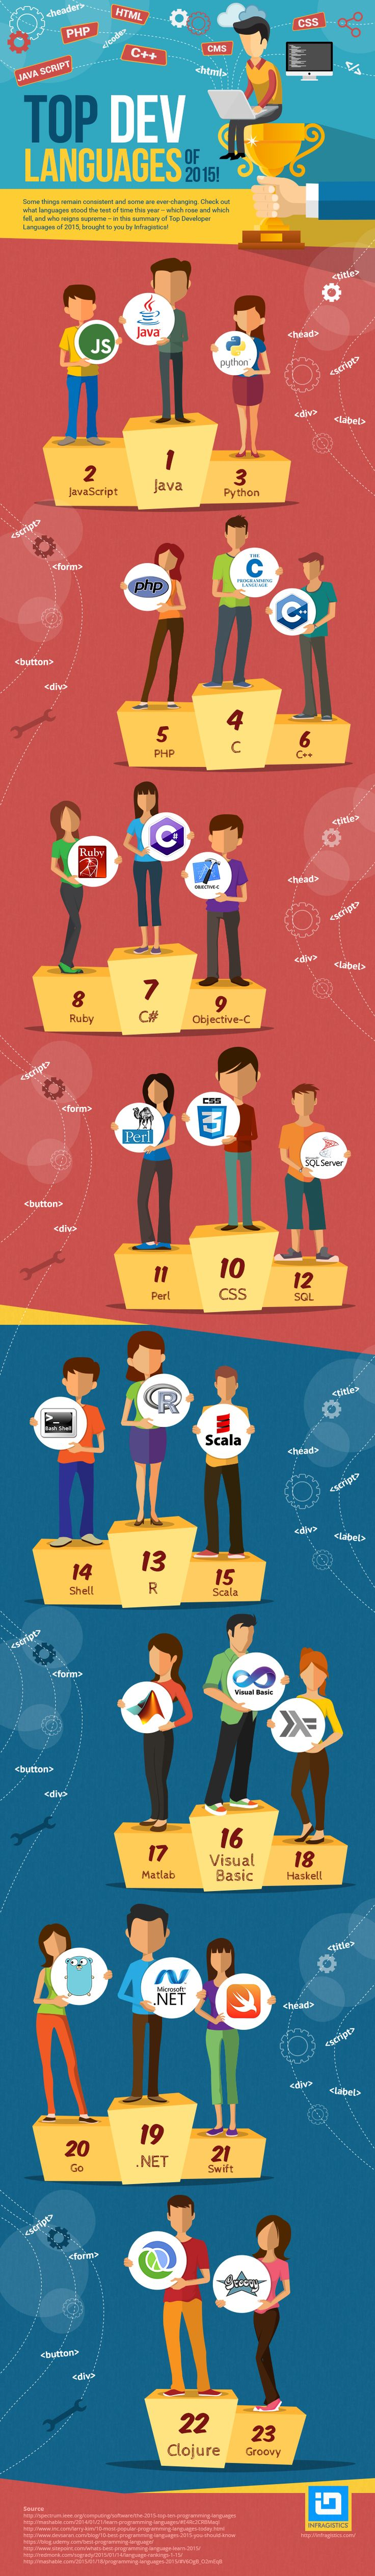 Top developing language for 2015